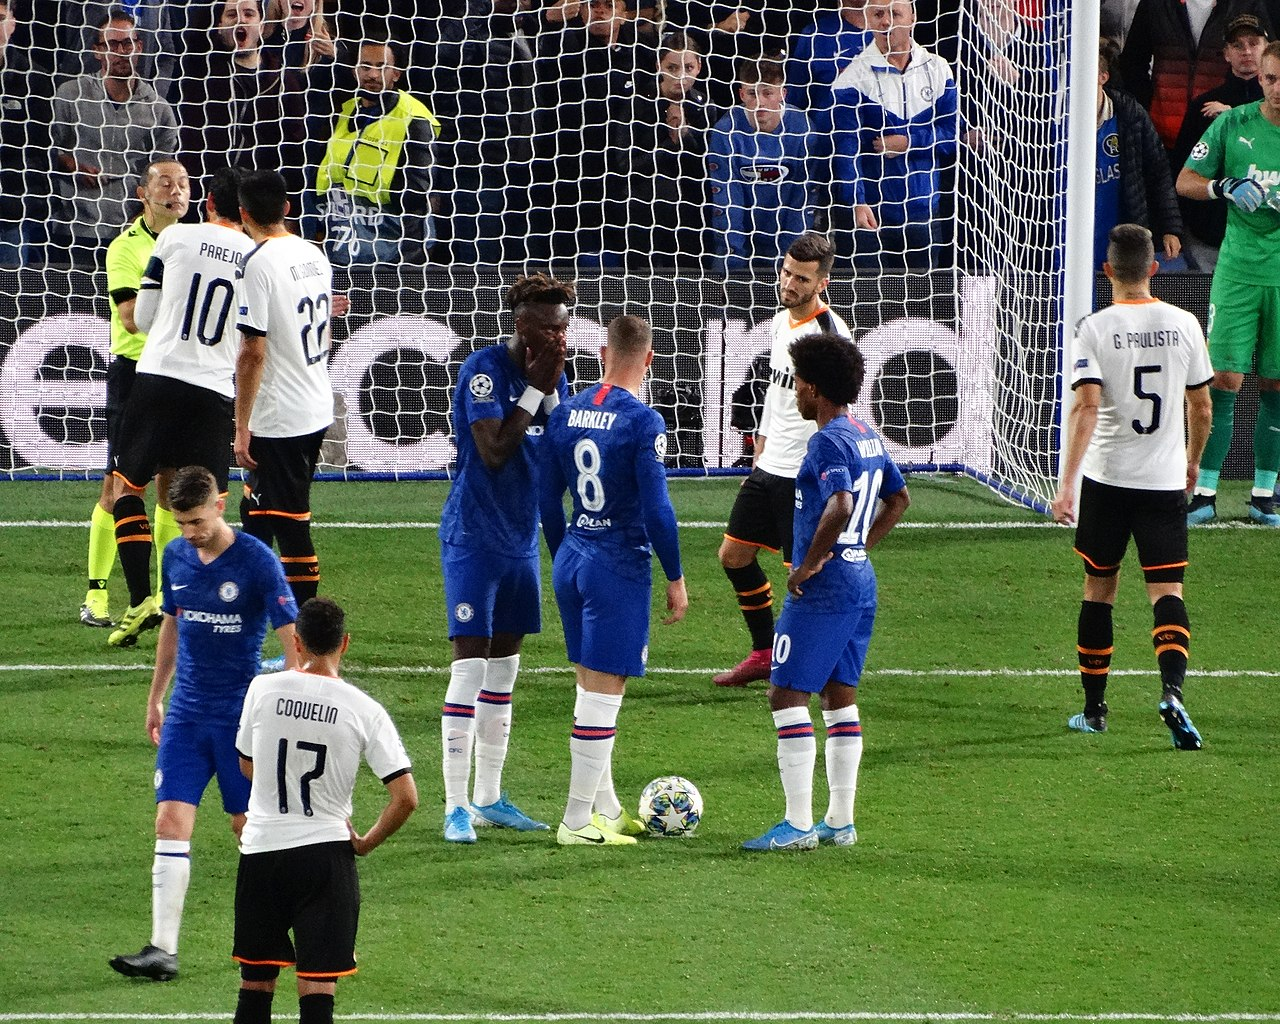 UEFA Champions League has been suspended. The picture shows Chelsea playing against Valencia in September.